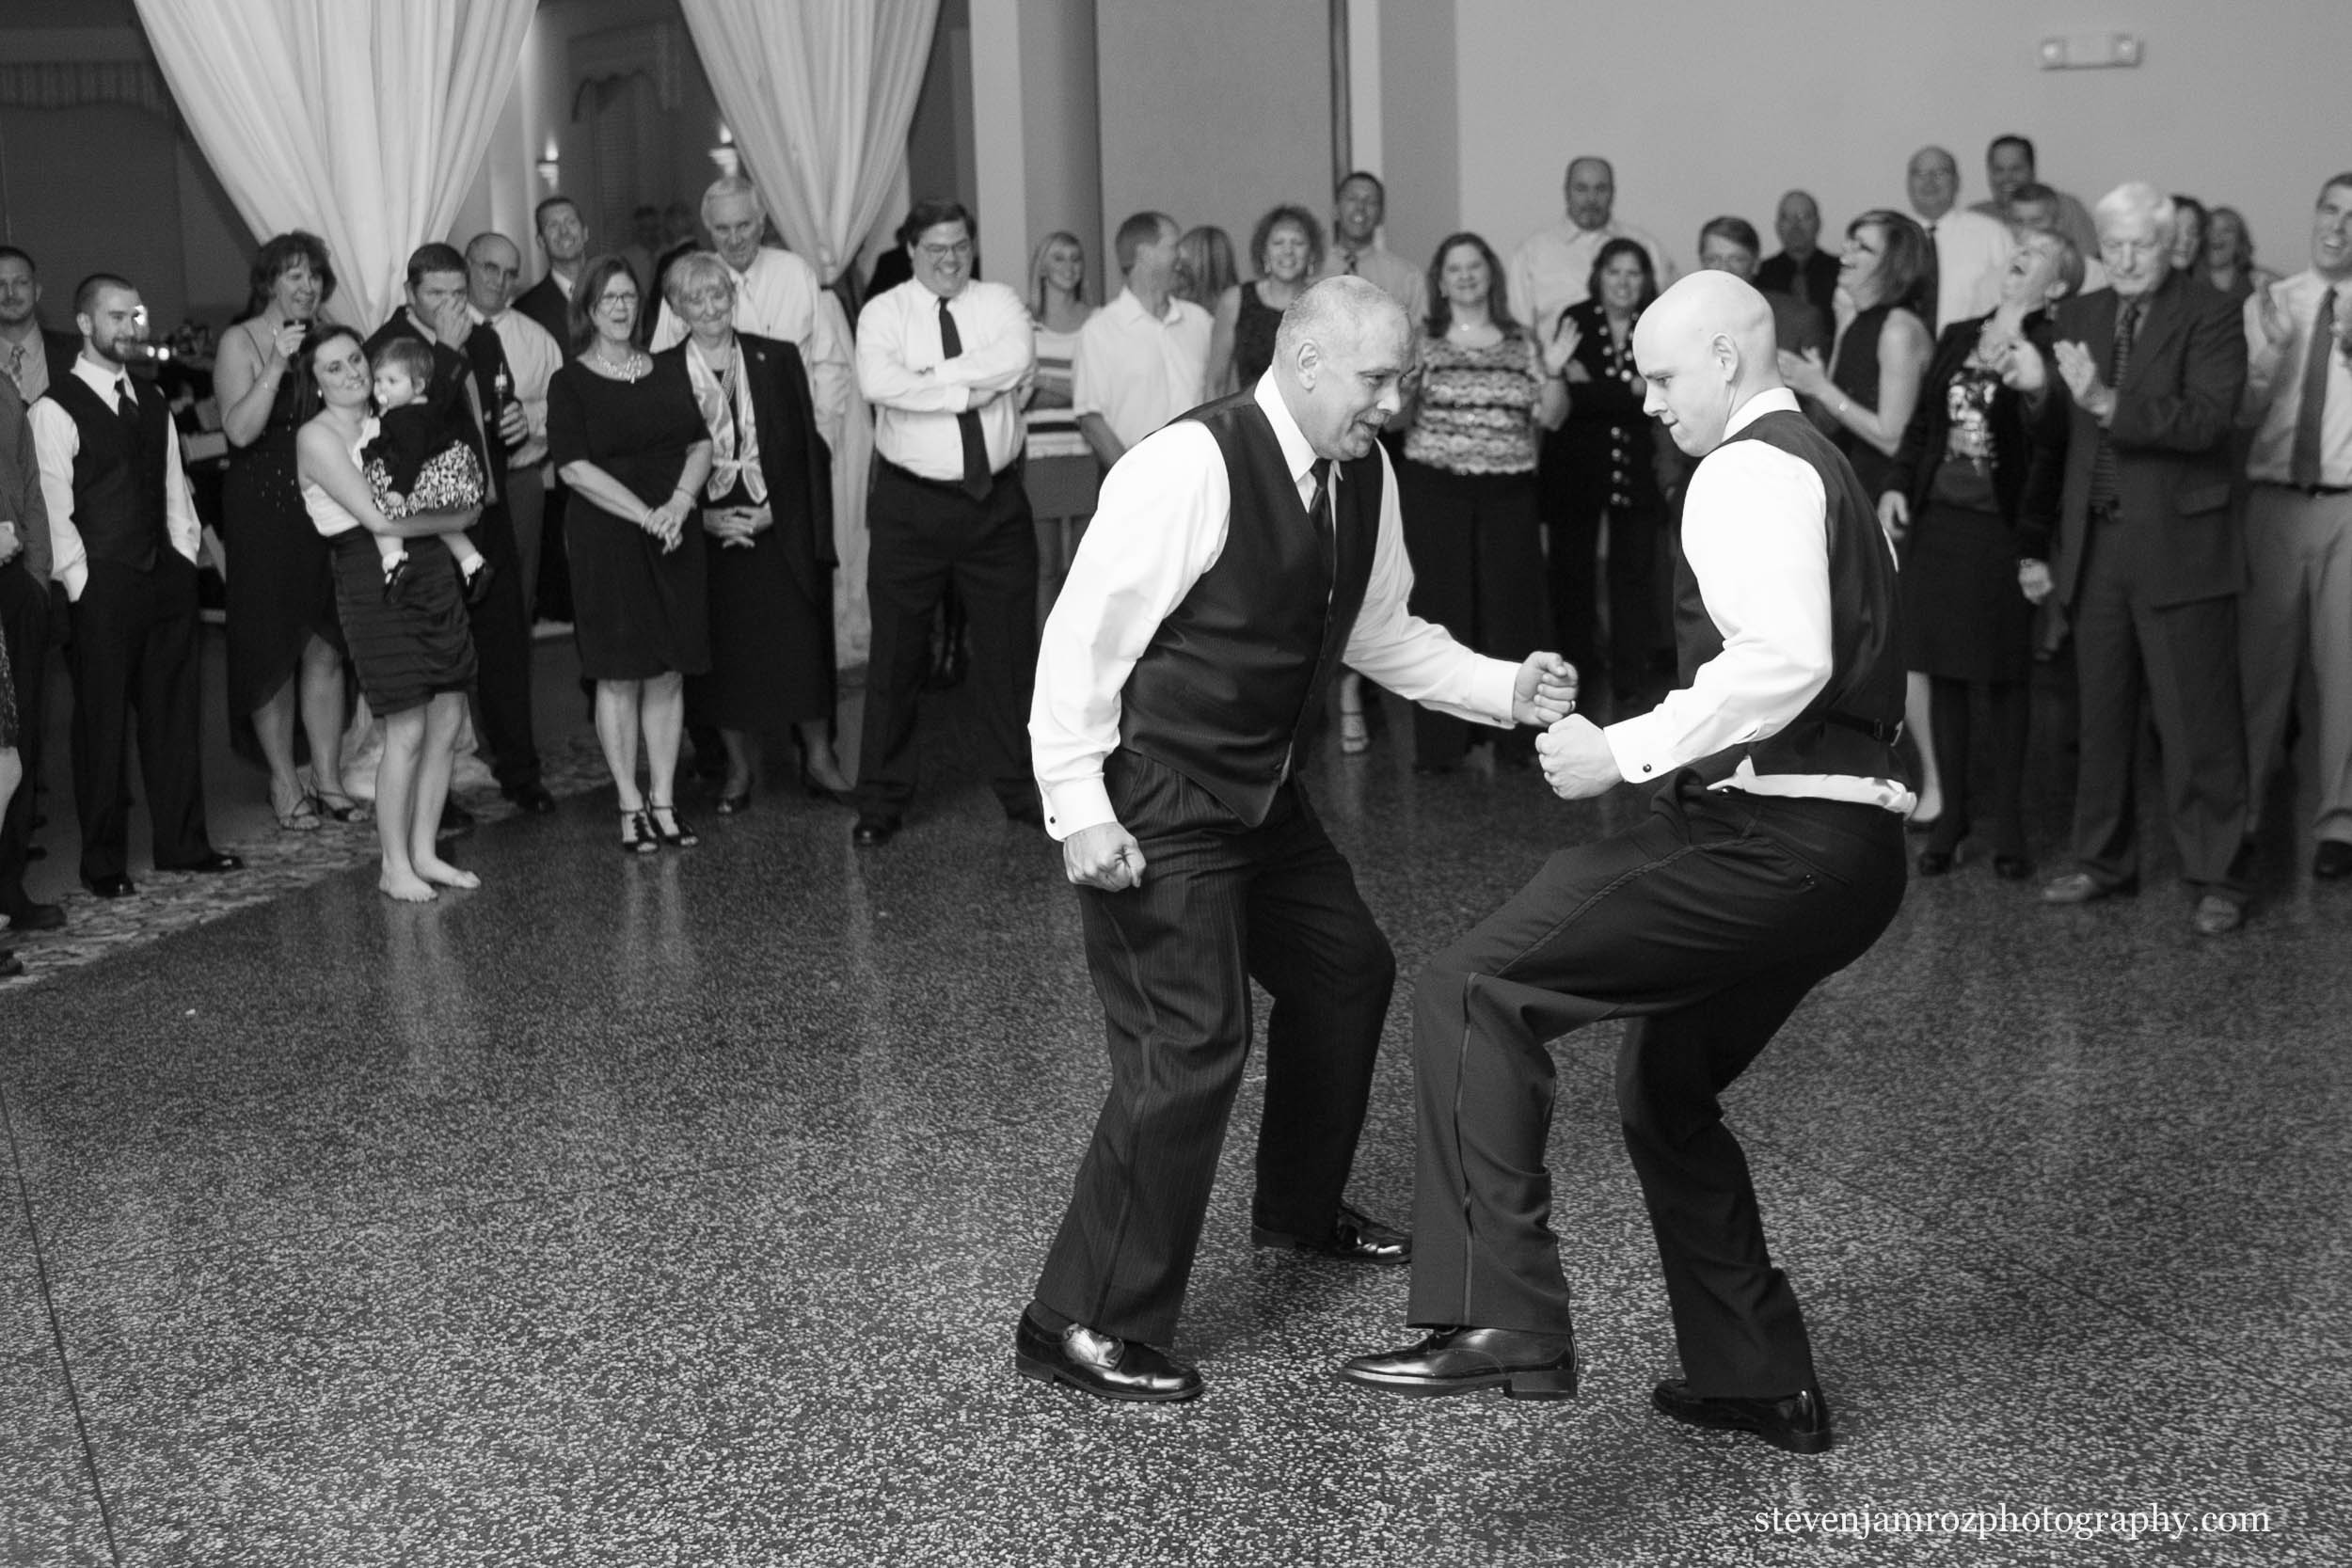 father-dancing-shrine-club-raleigh-wedding-steven-jamroz-photography-0169.jpg